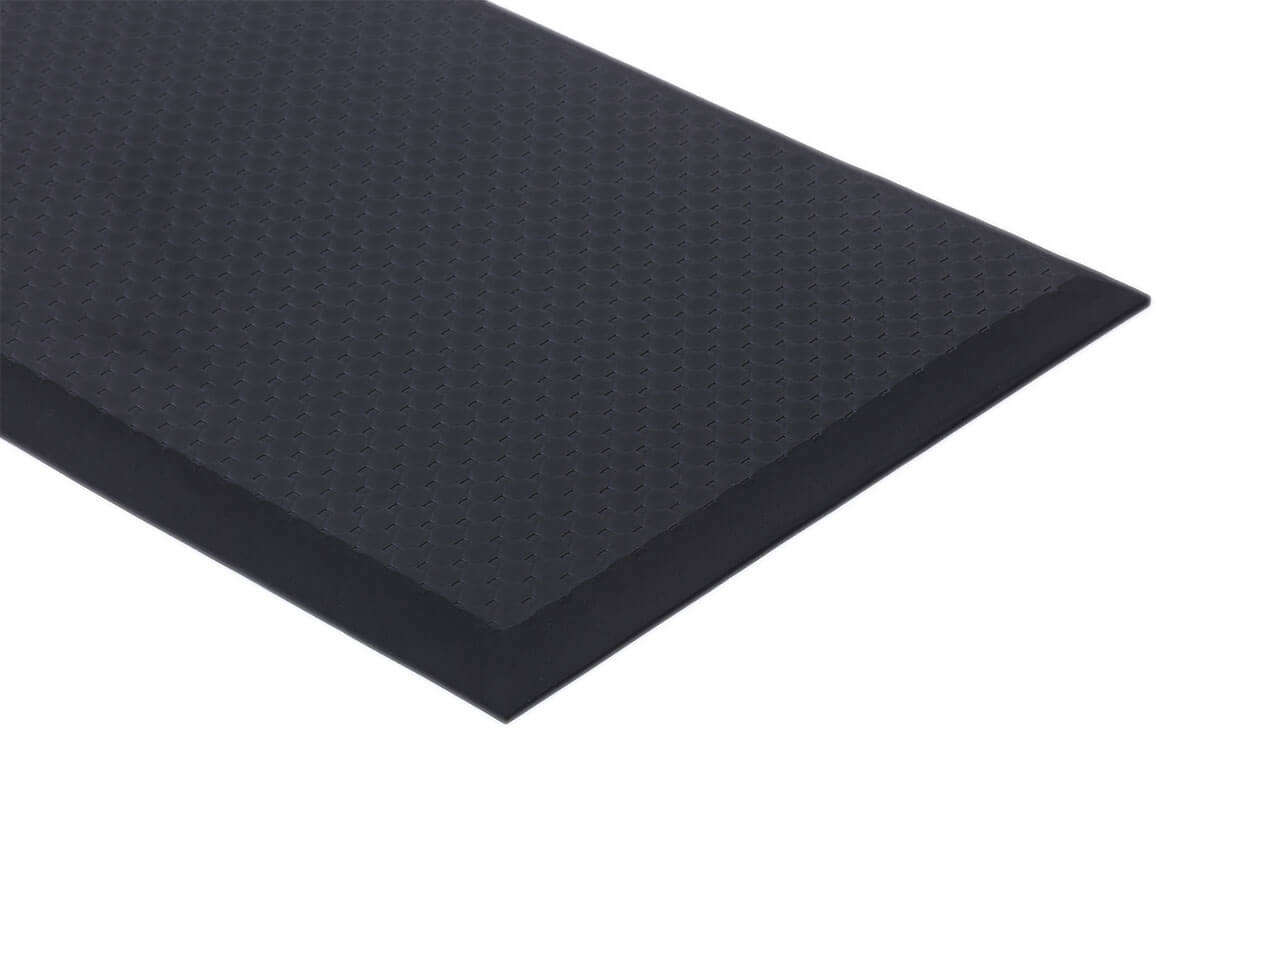 Tpe Anti Fatigue Mat Tpe Standing Mat Supplier Ahome